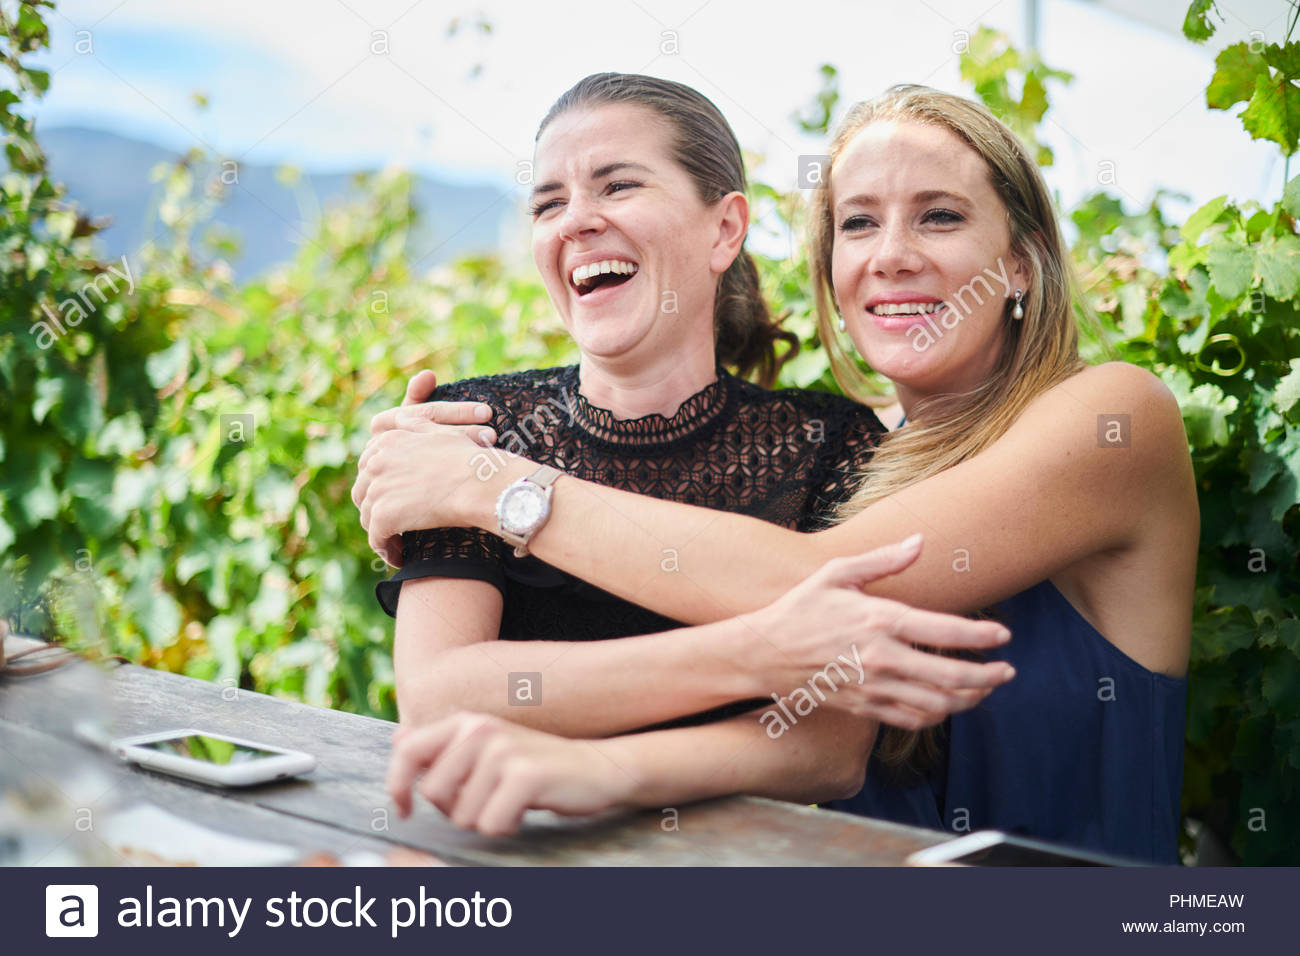 Smiling friends embracing at lunch - Stock Image